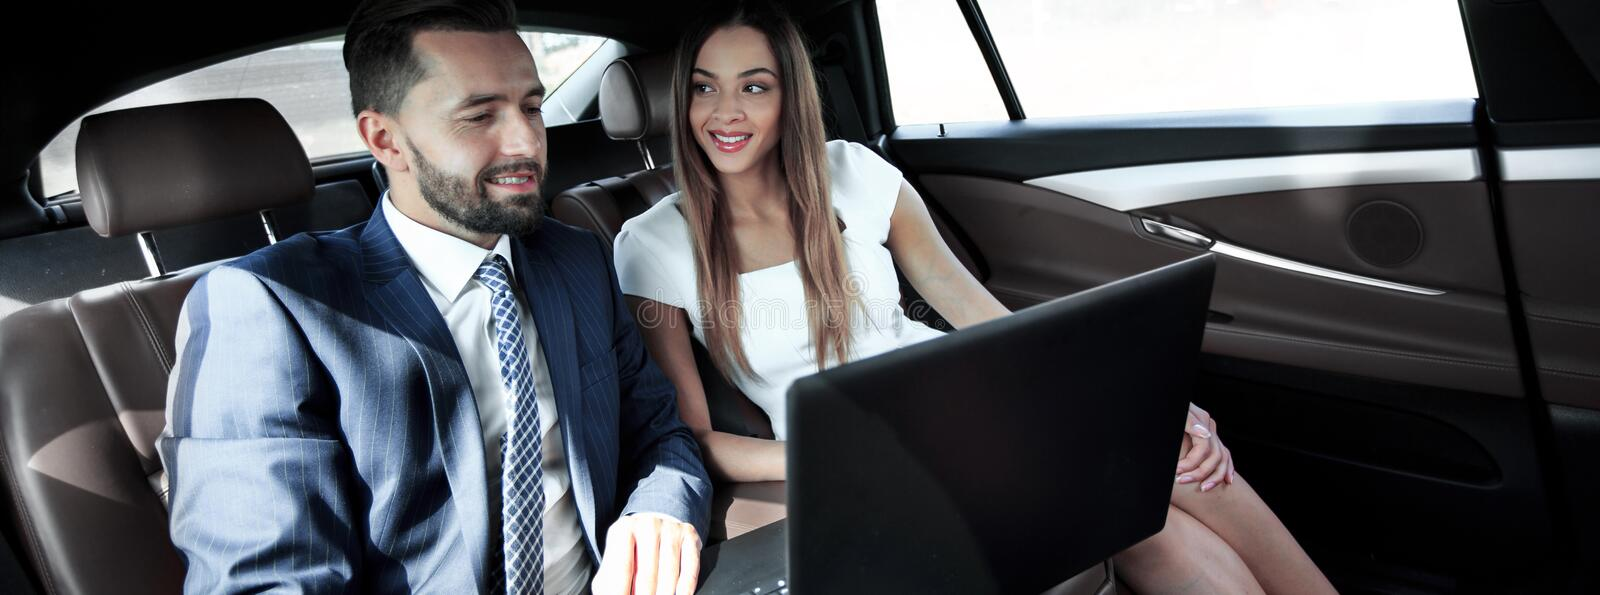 Business man and woman working together in the car. Business people with a laptop working in the back seat of a car stock images